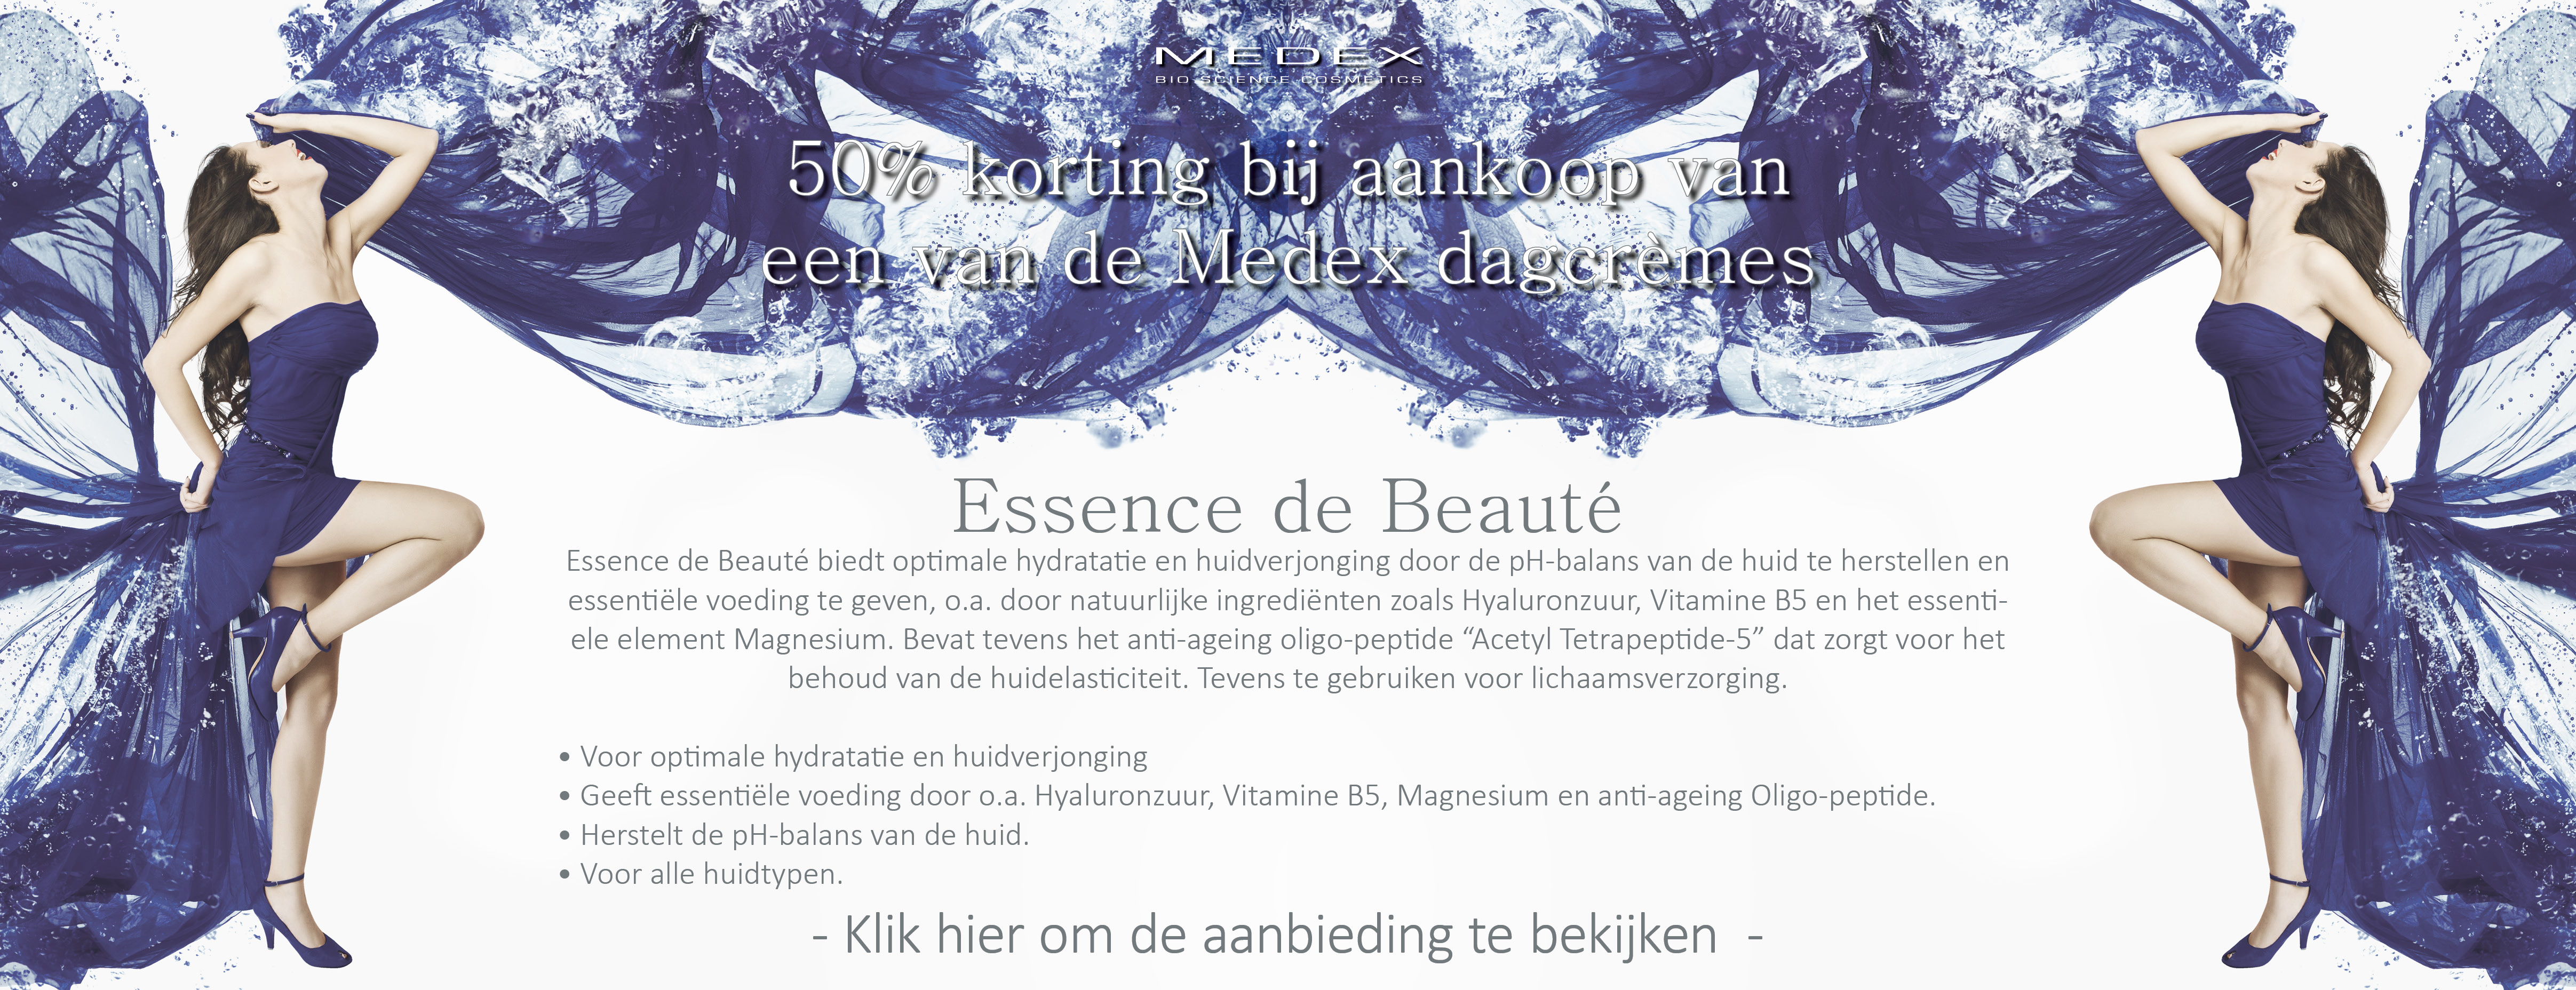 Medex Bio Science Cosmetics - Essence de Beaute Angebot